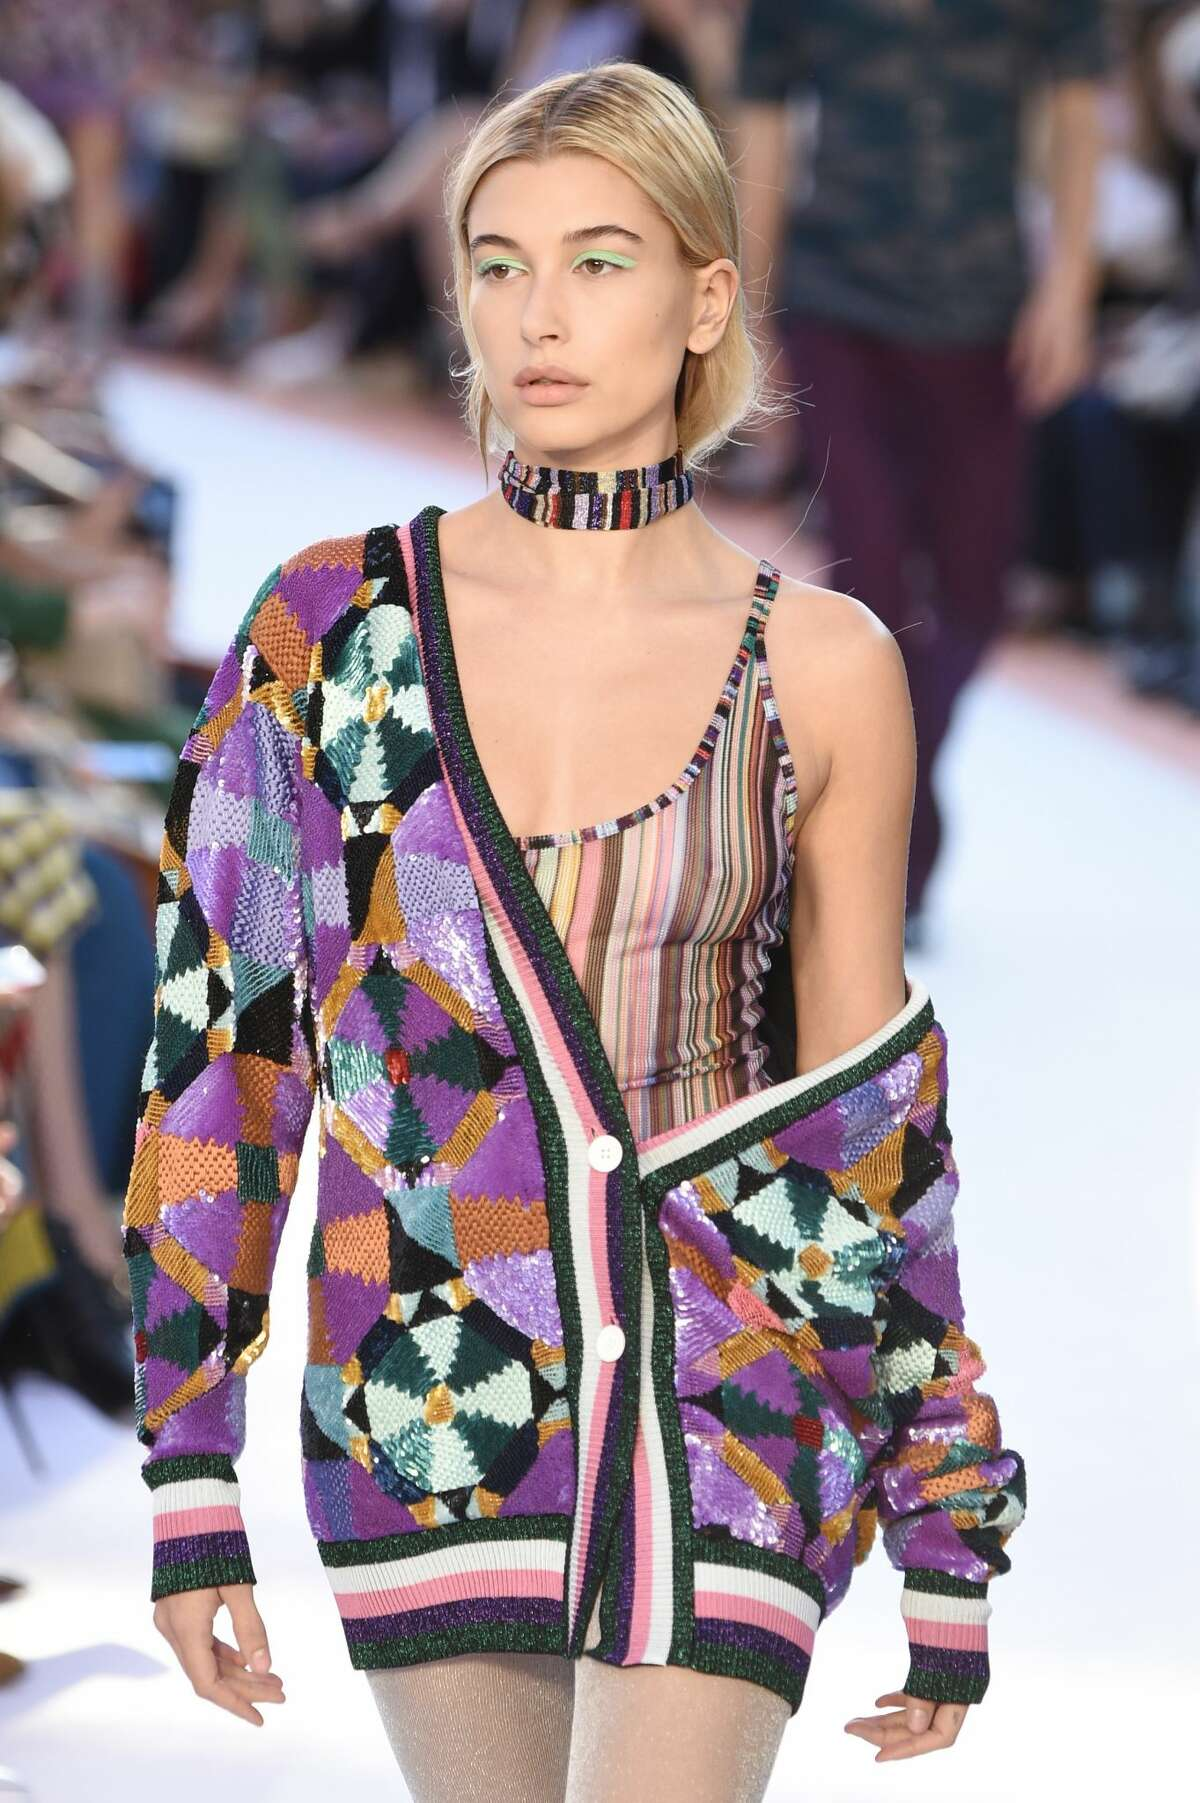 Hailey Baldwin walks the runway at the Missoni show during Milan Fashion Week Spring/Summer 2018 on September 23, 2017. Keep clicking to see the hit moments from Milan Fashion Week.